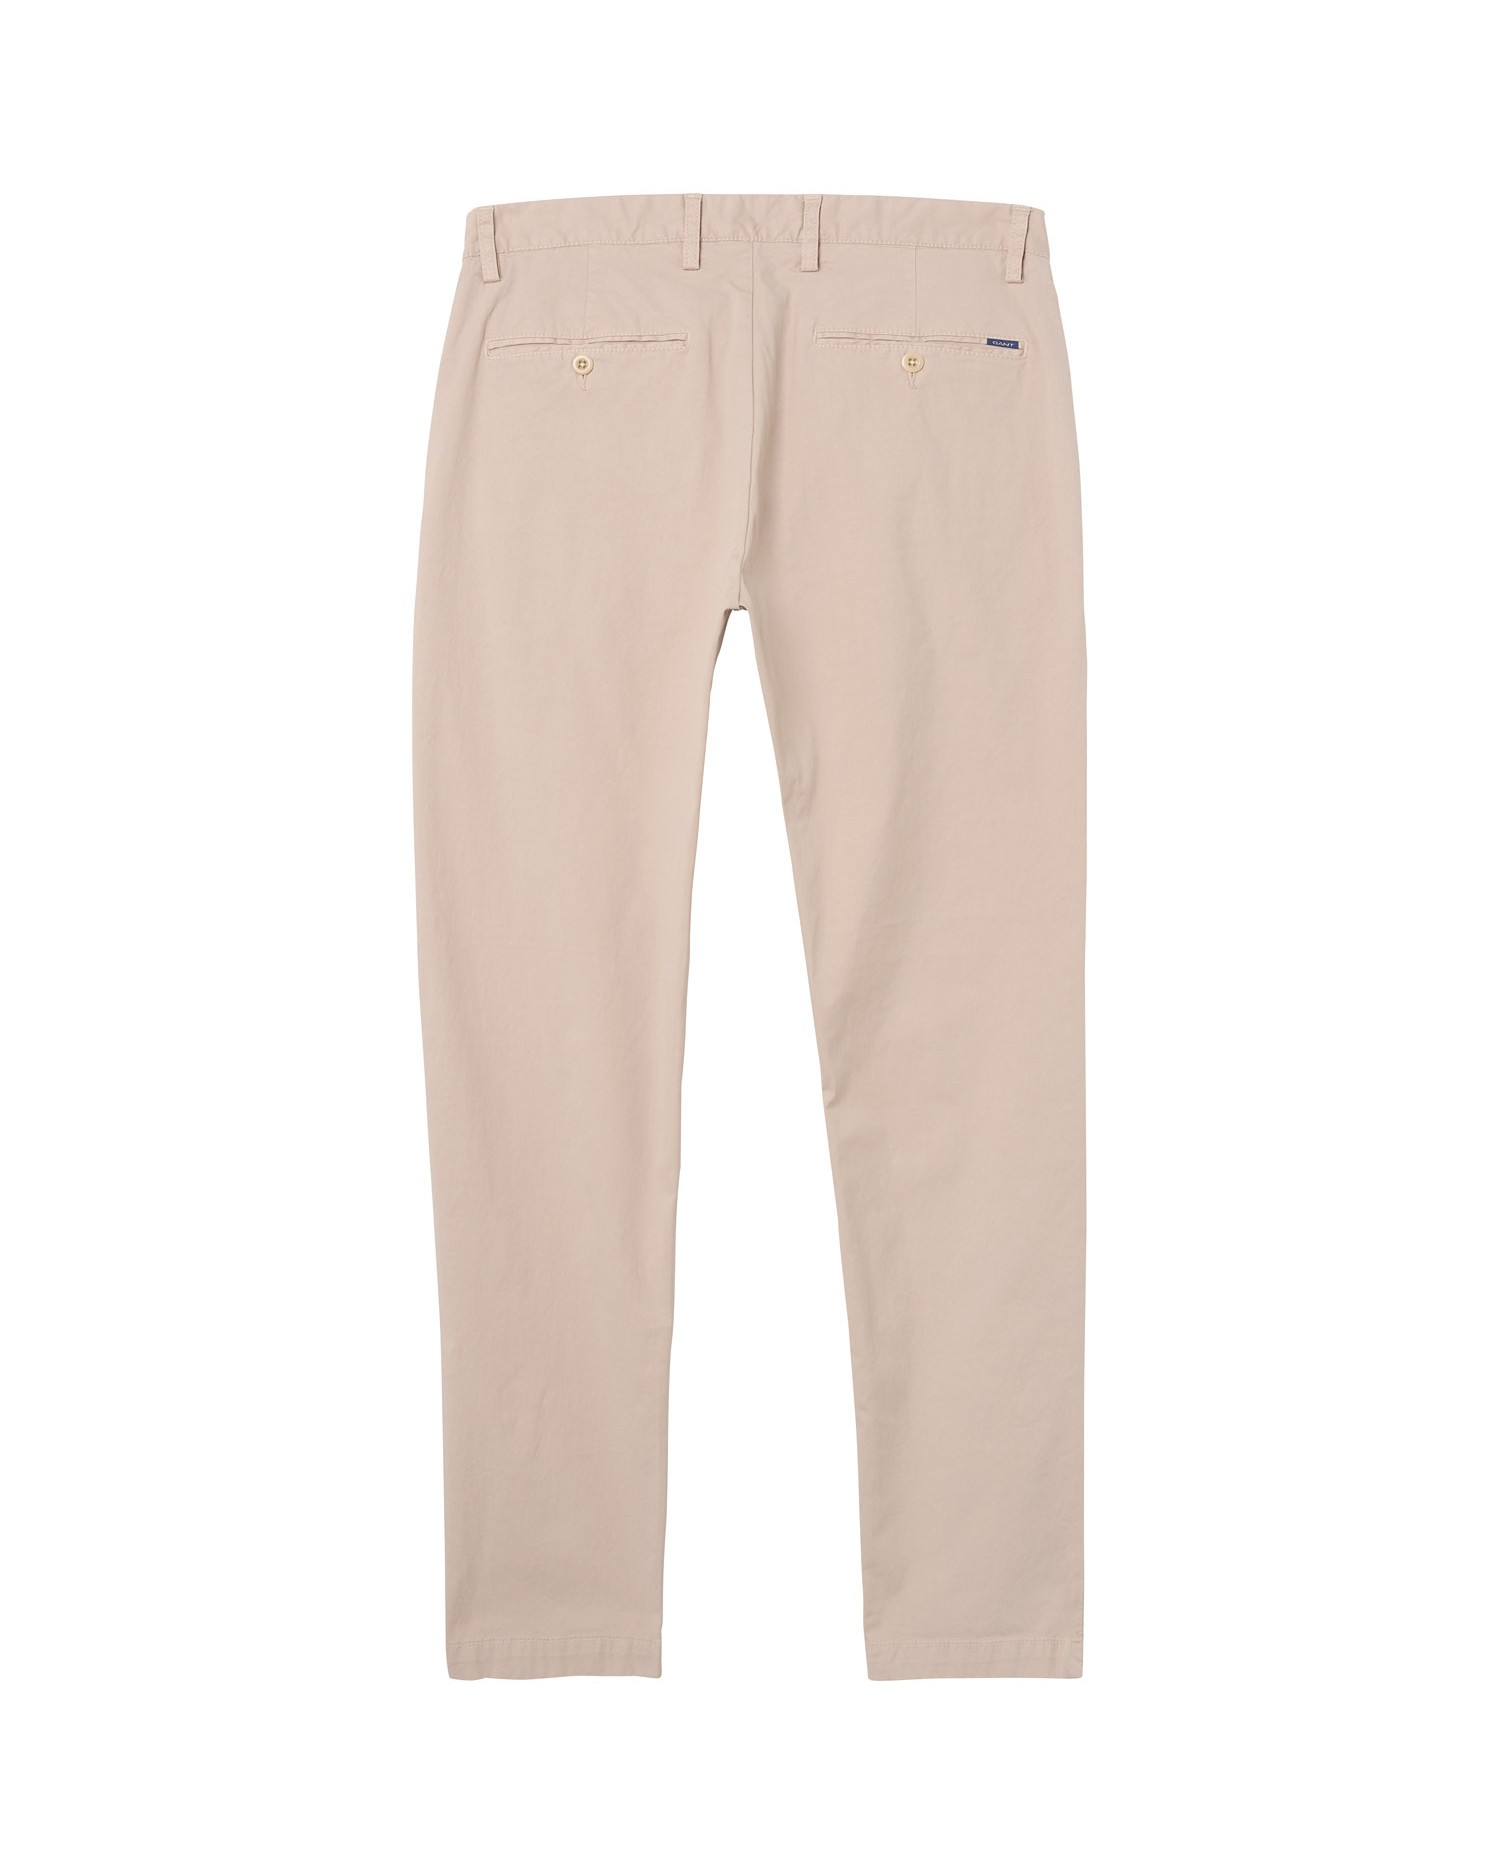 GANT Men's Slim Sunbleached Chino - 1913556